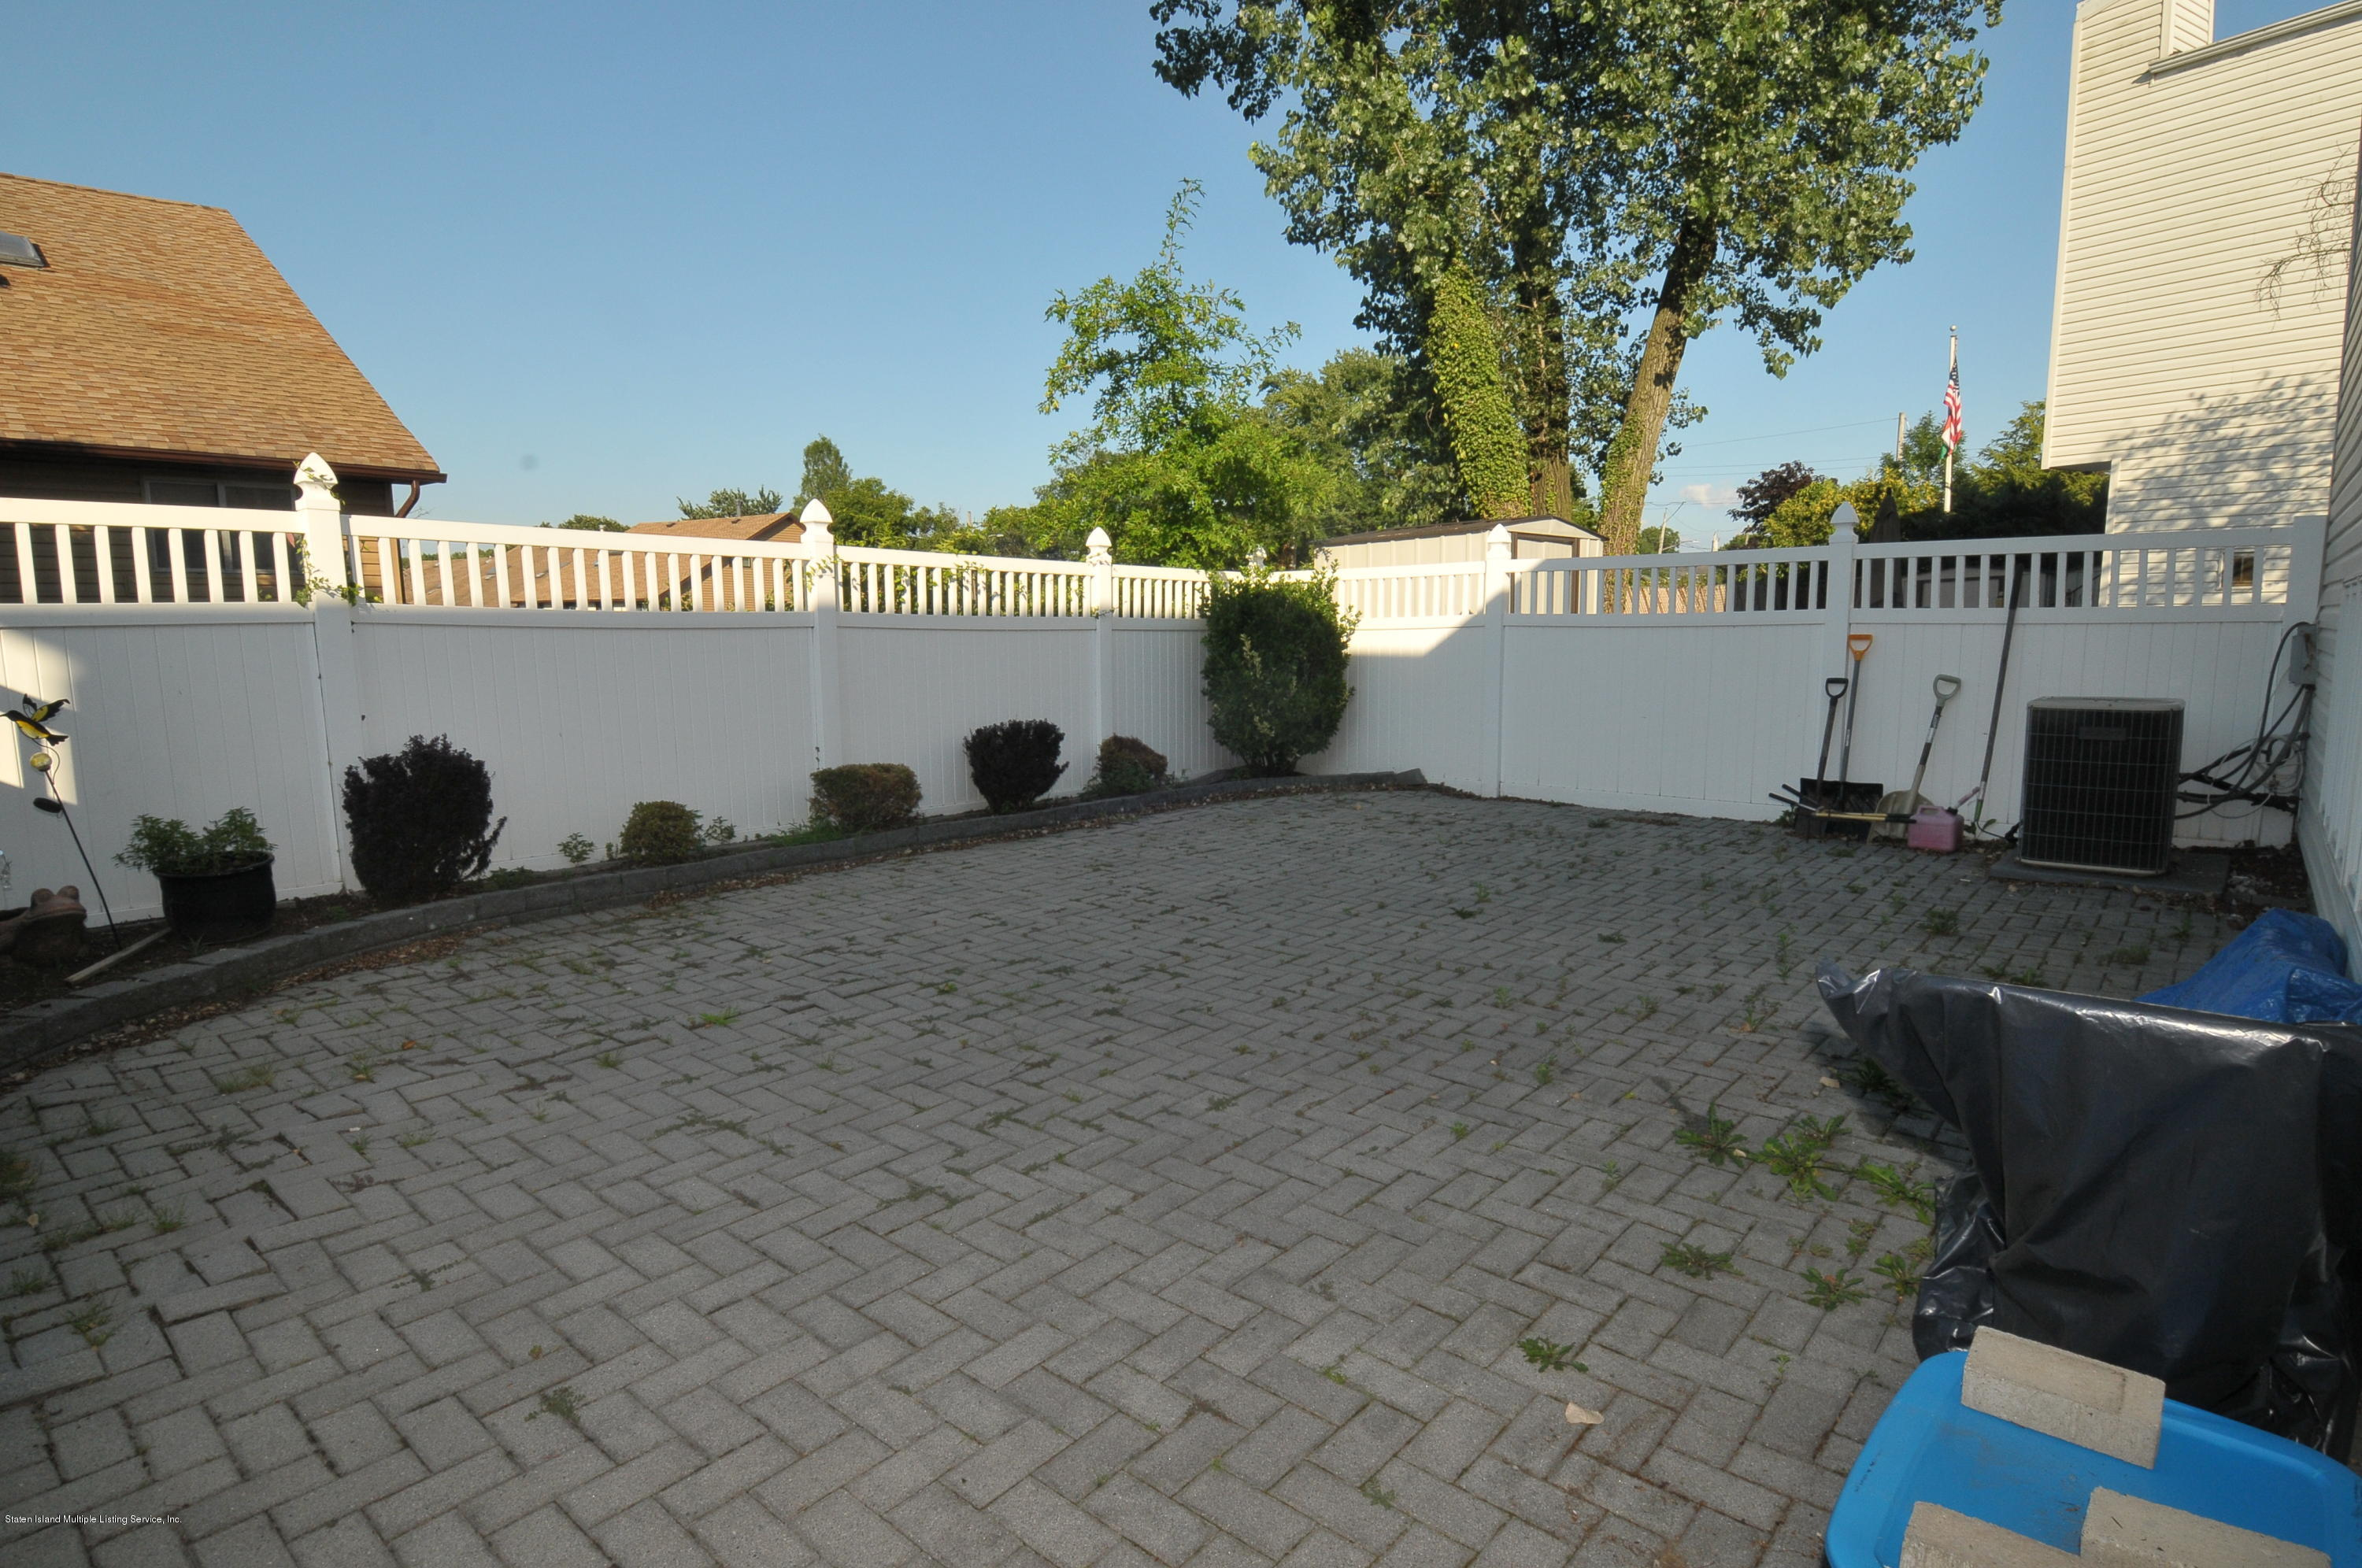 Single Family - Detached 346 Green Valley Road  Staten Island, NY 10312, MLS-1139171-22